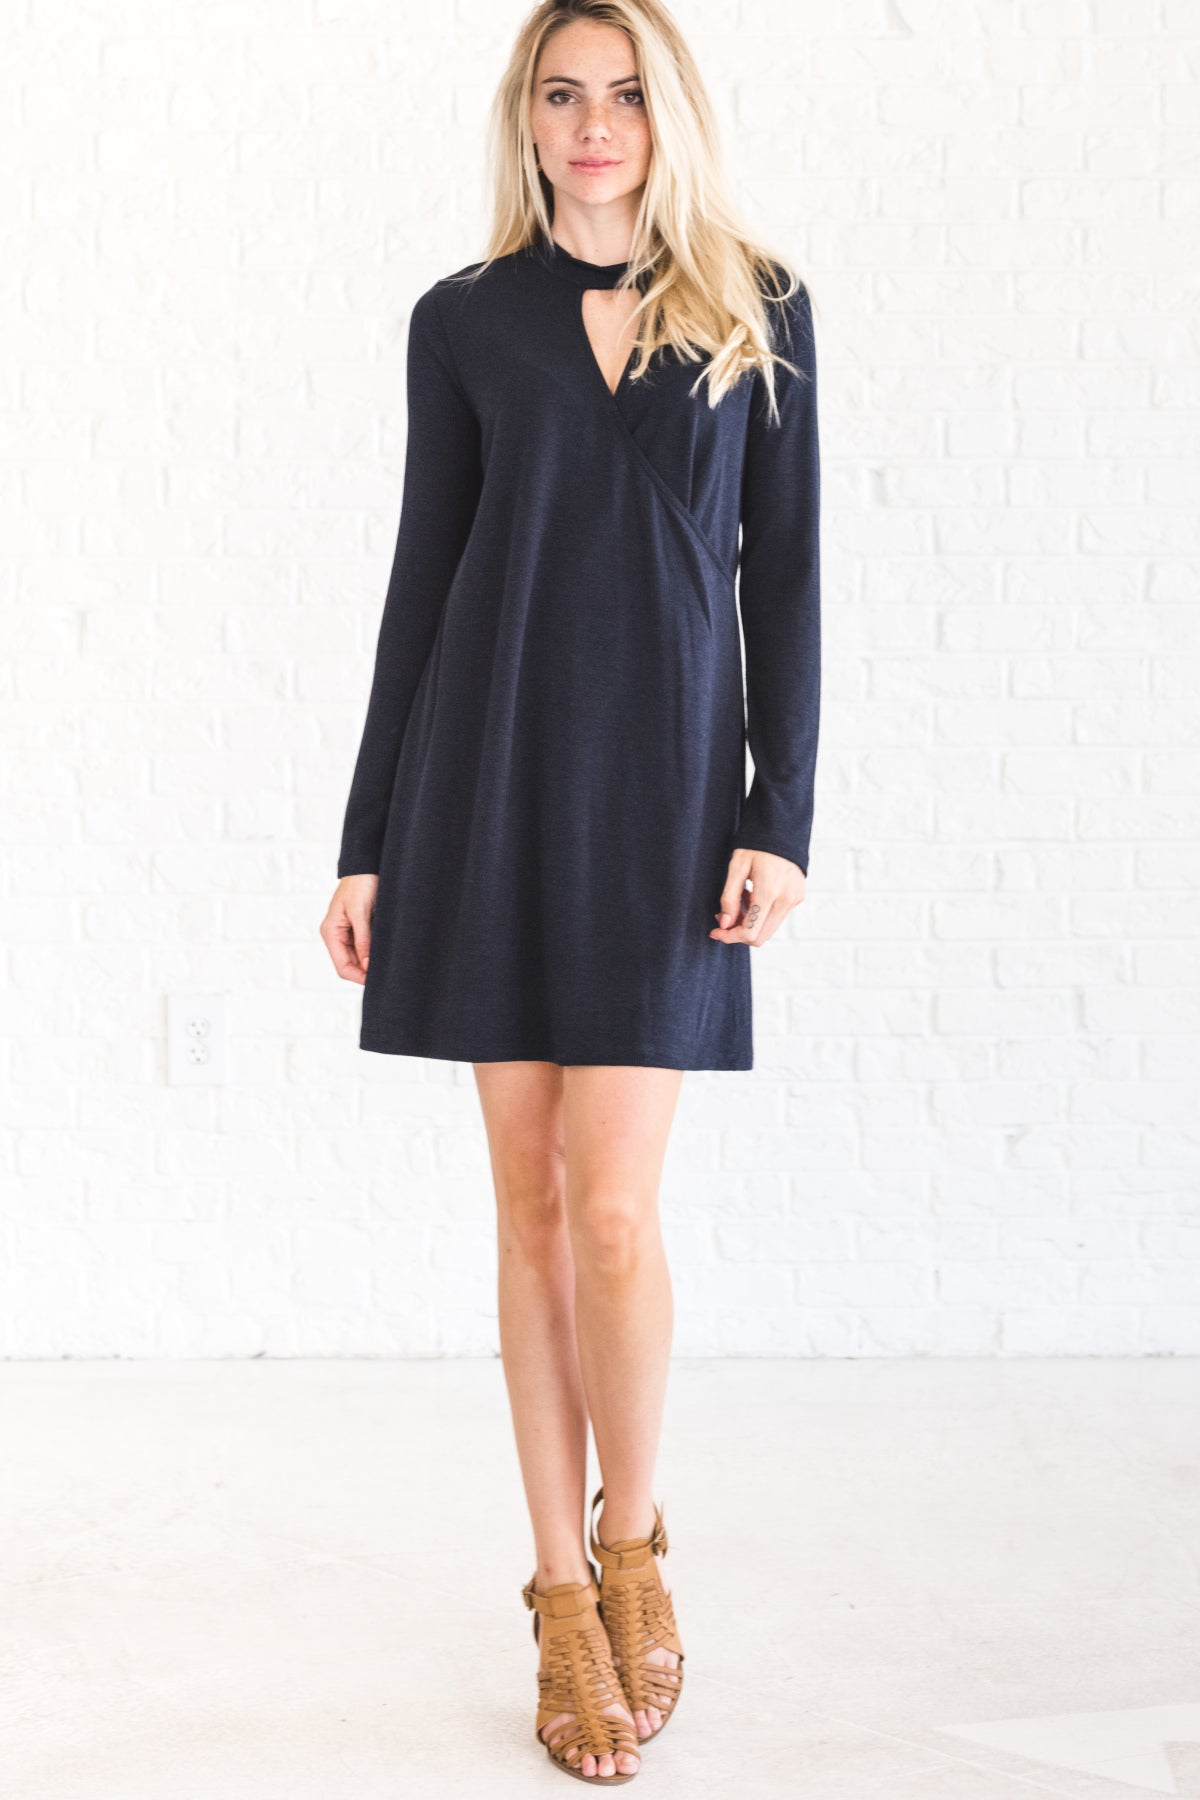 Navy Blue Mini Winter Dress with Nursing Friendly Wrap Style